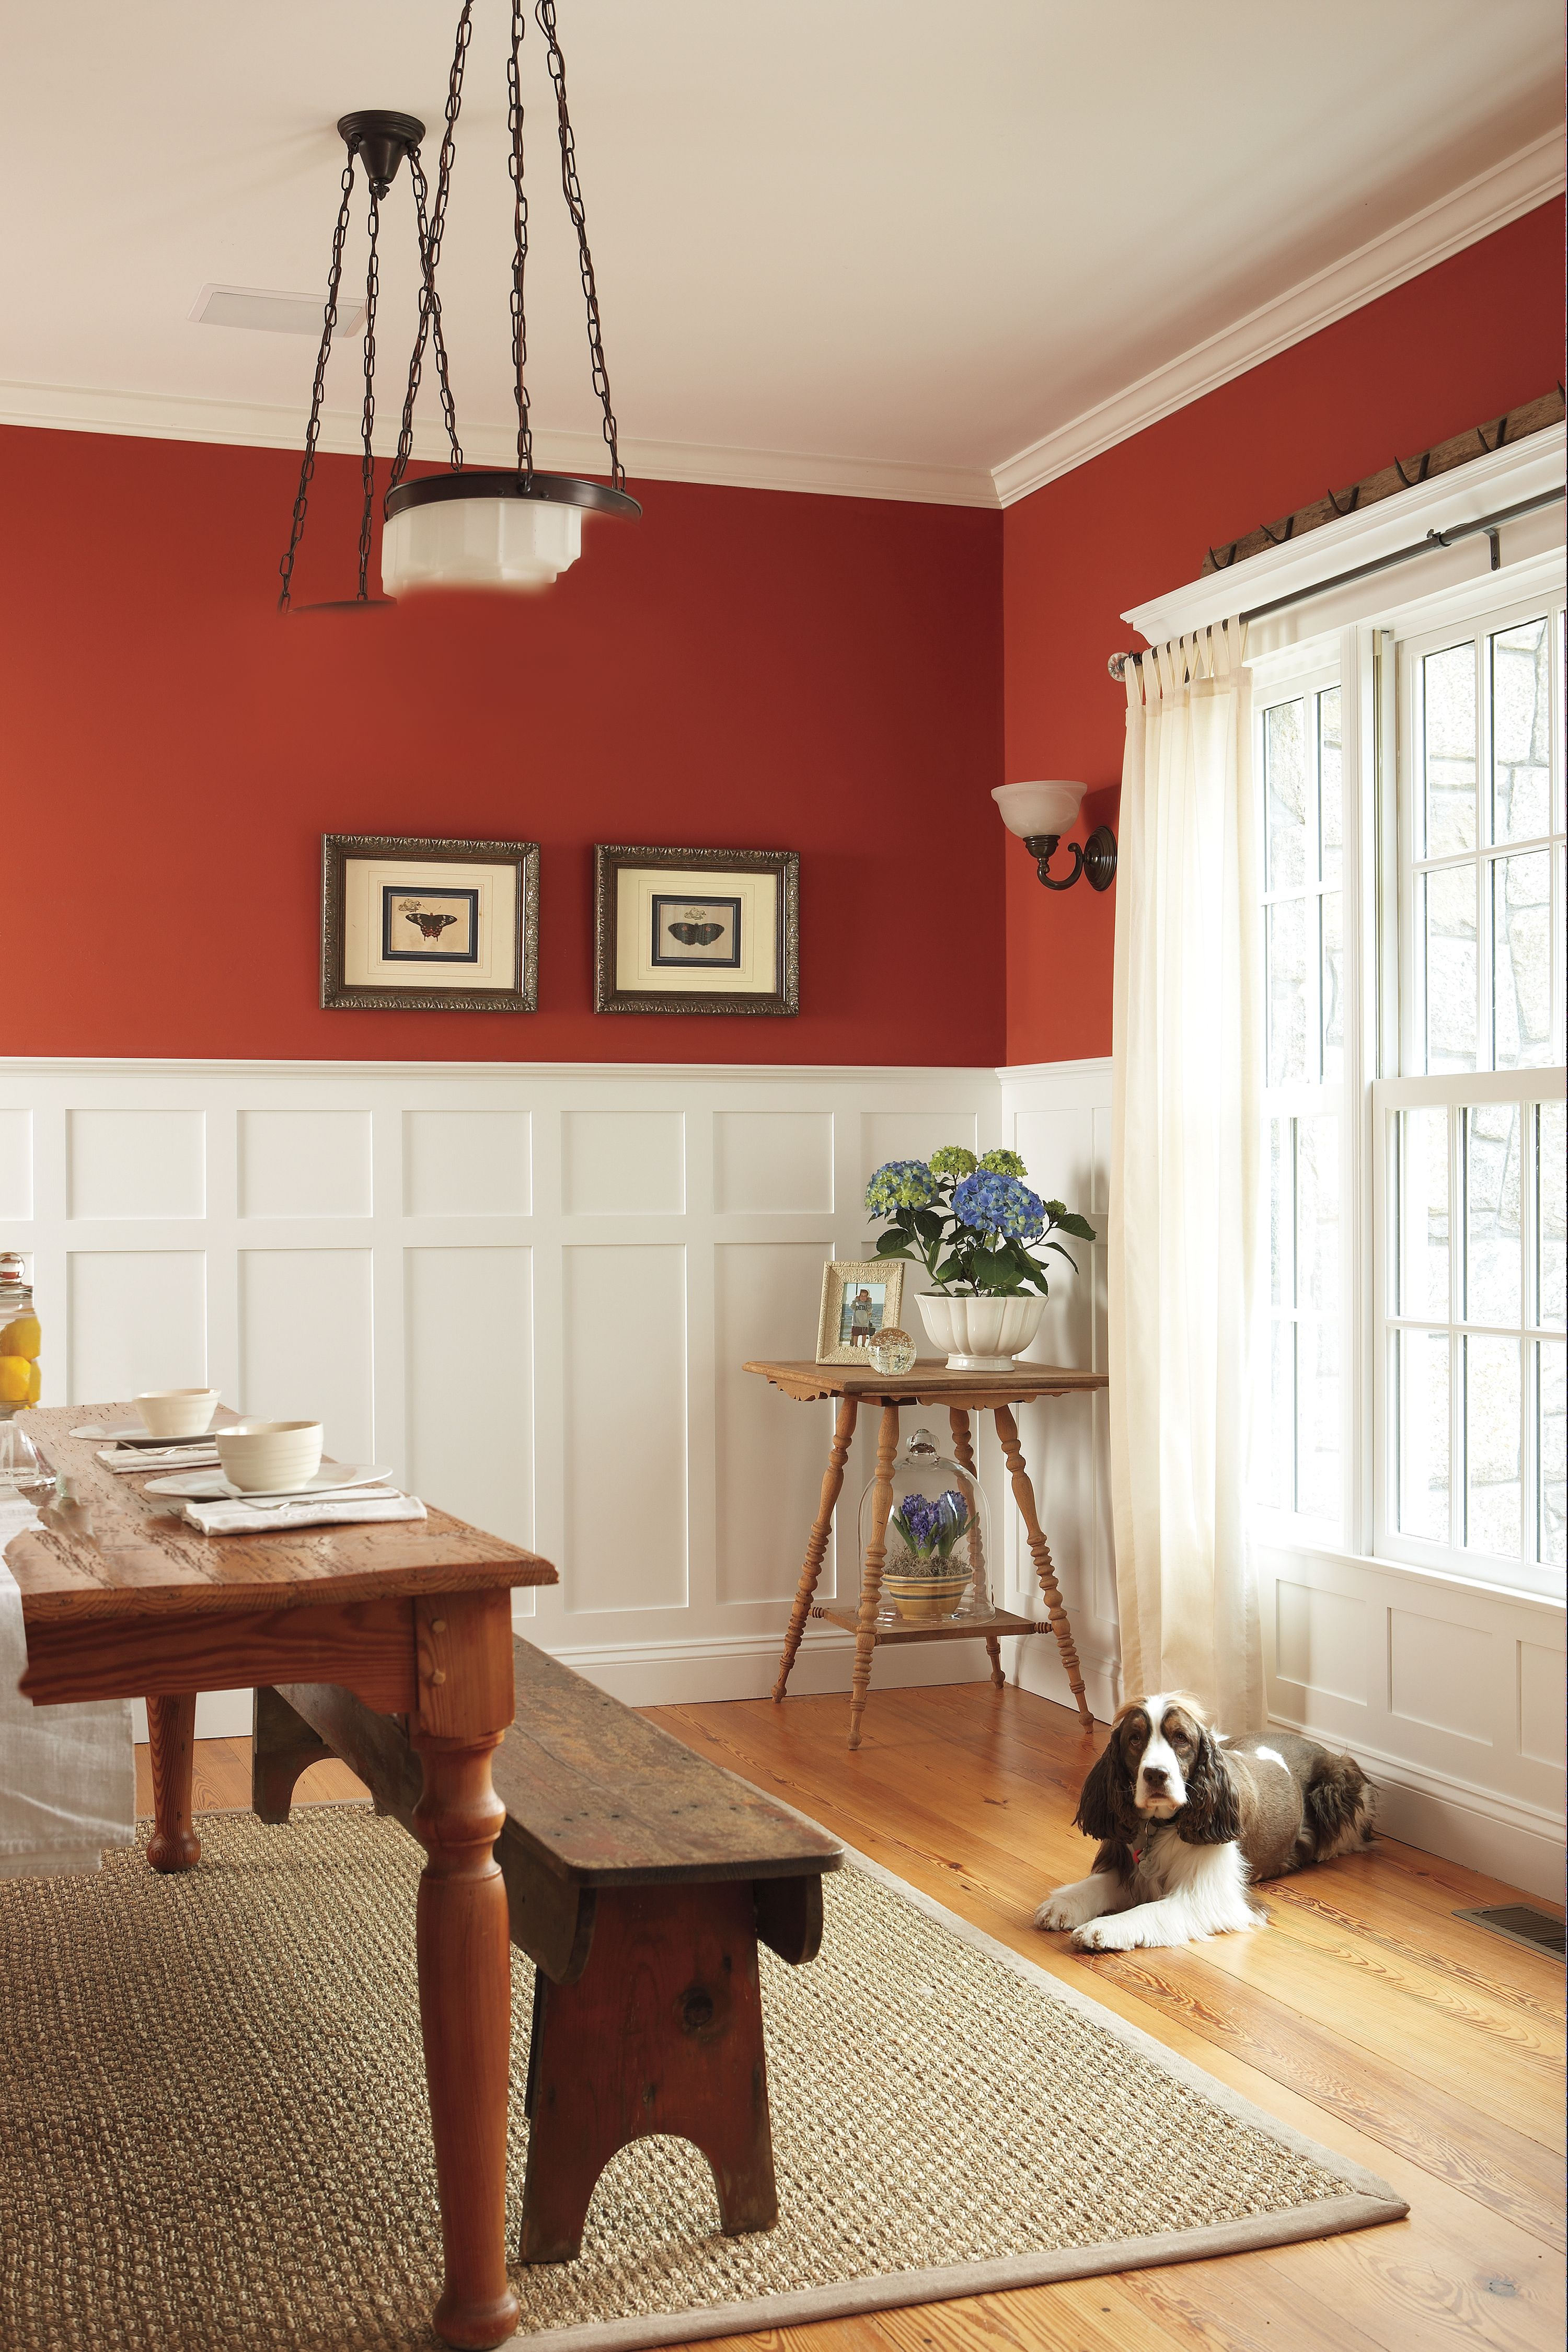 All About Wainscoting Dining Room Wainscoting Wainscoting Styles Red Dining Room